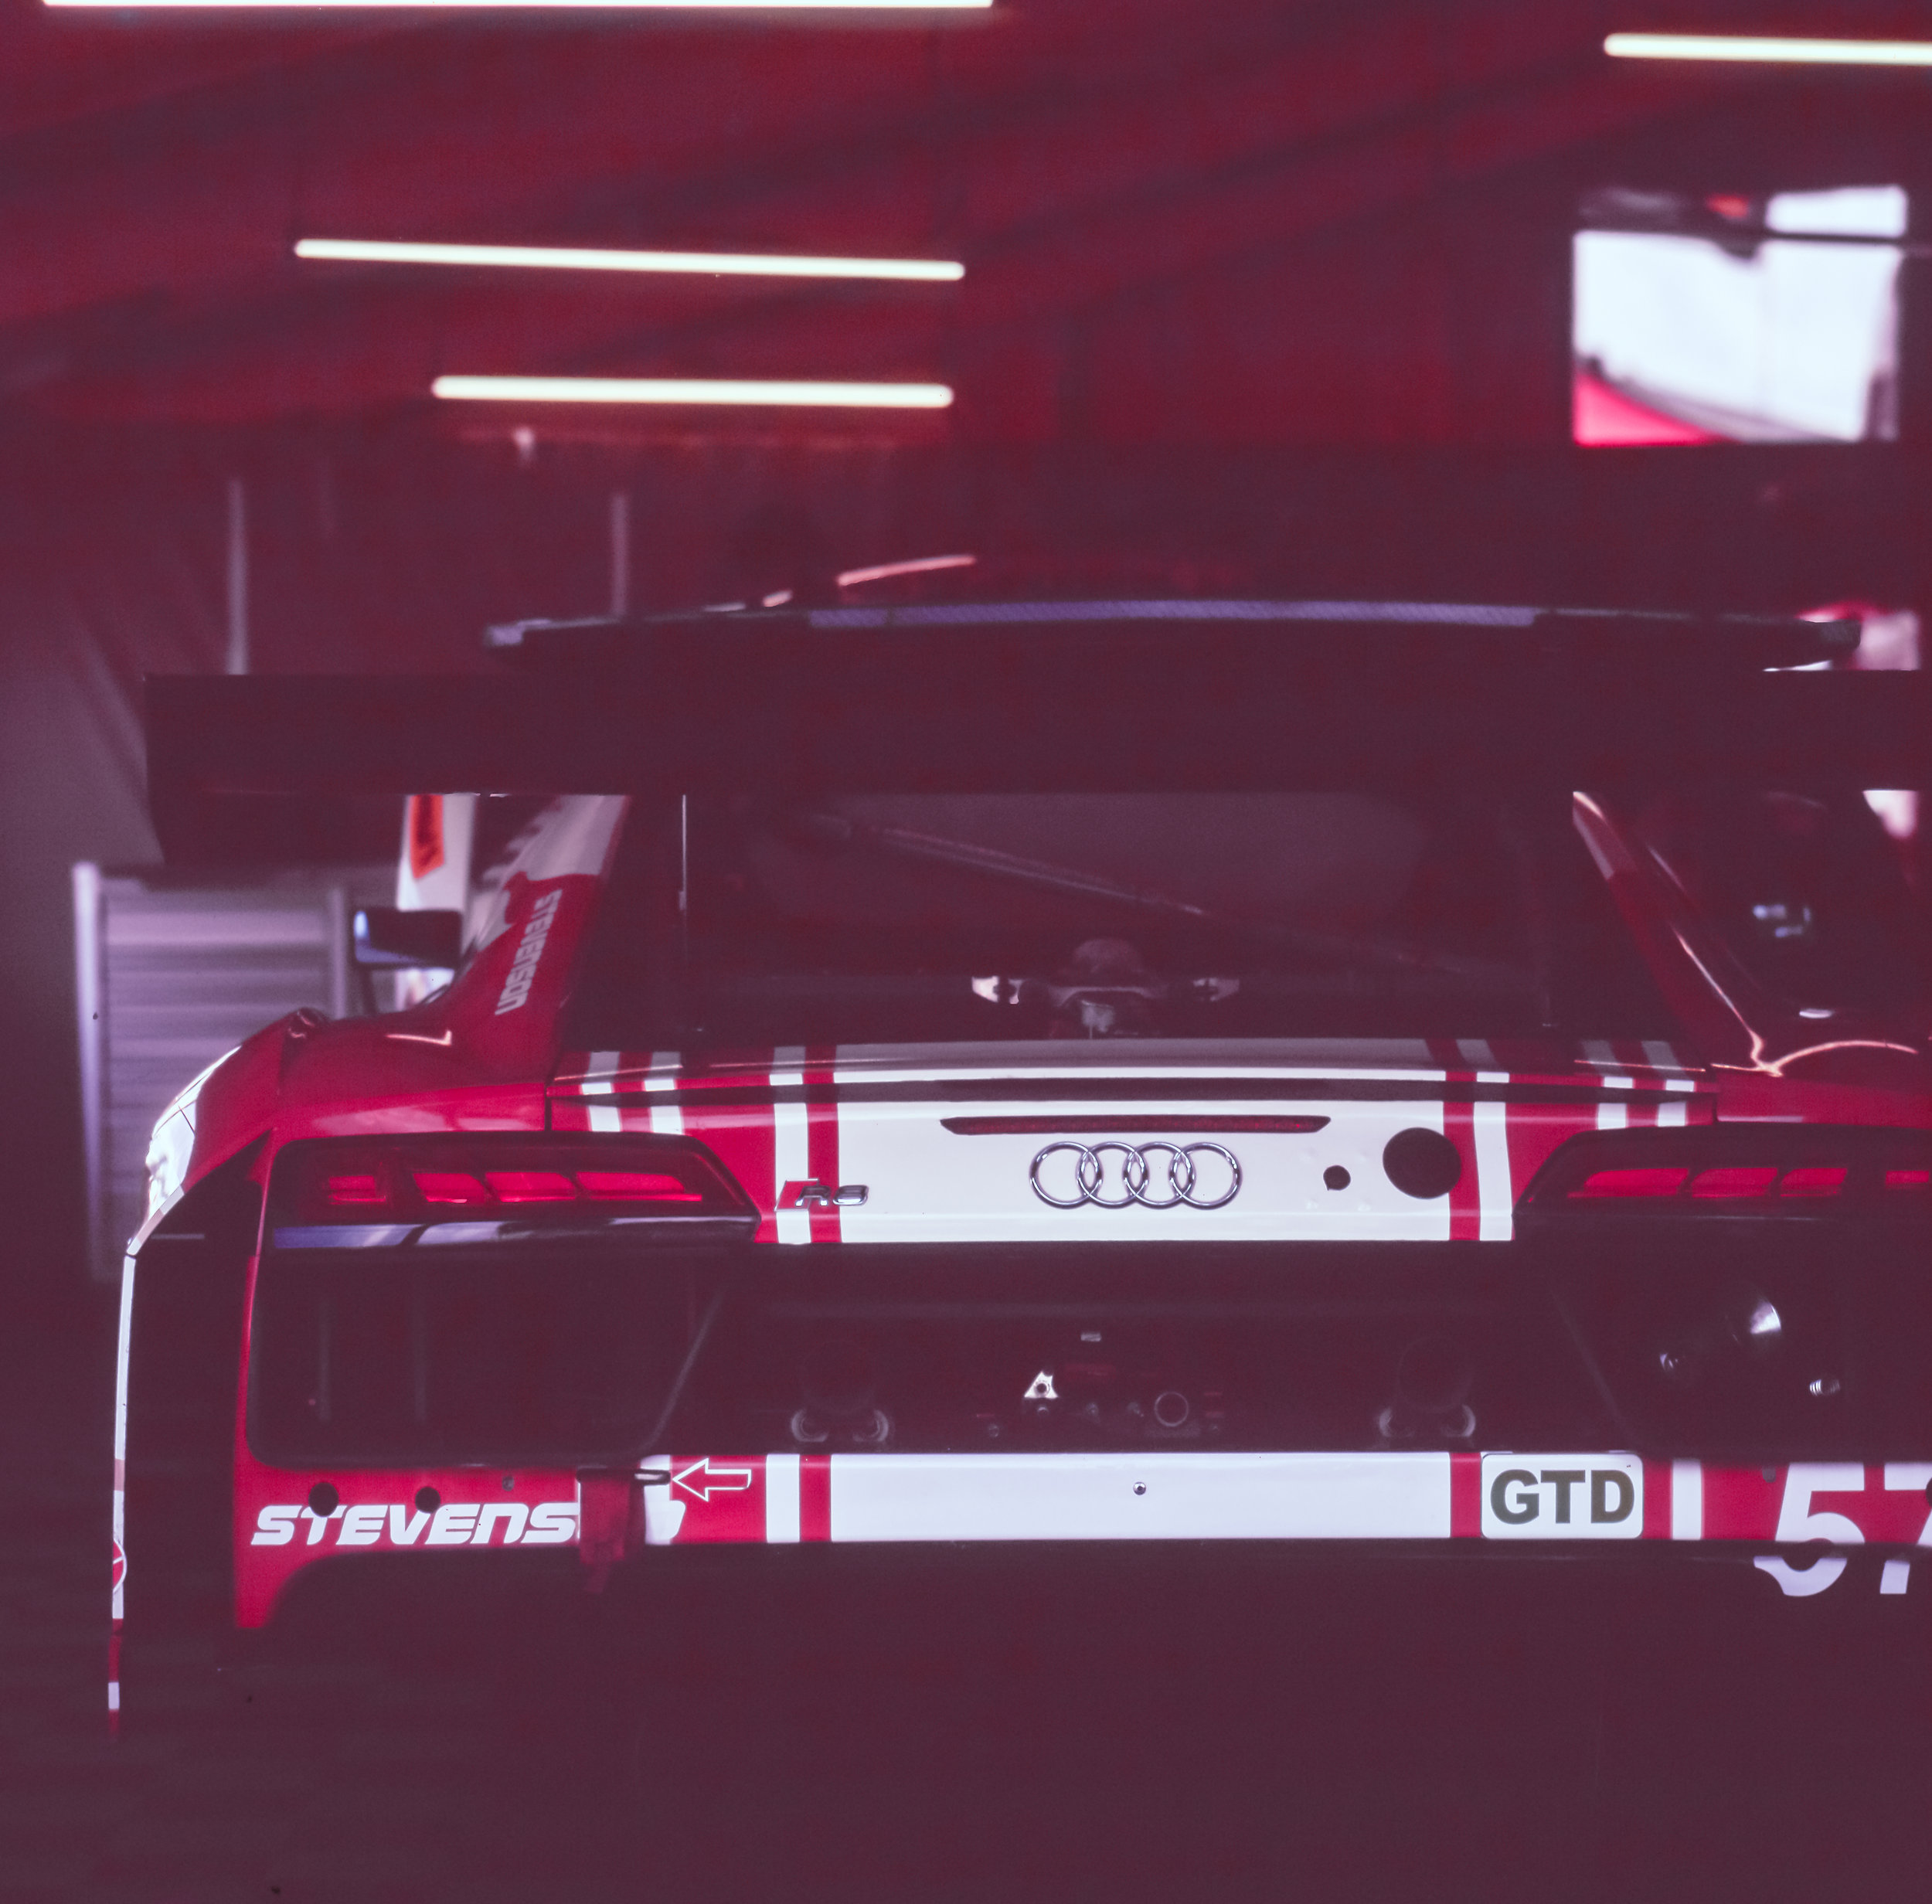 The R8 sits in the Paddock as it gets prepped to get on the track...